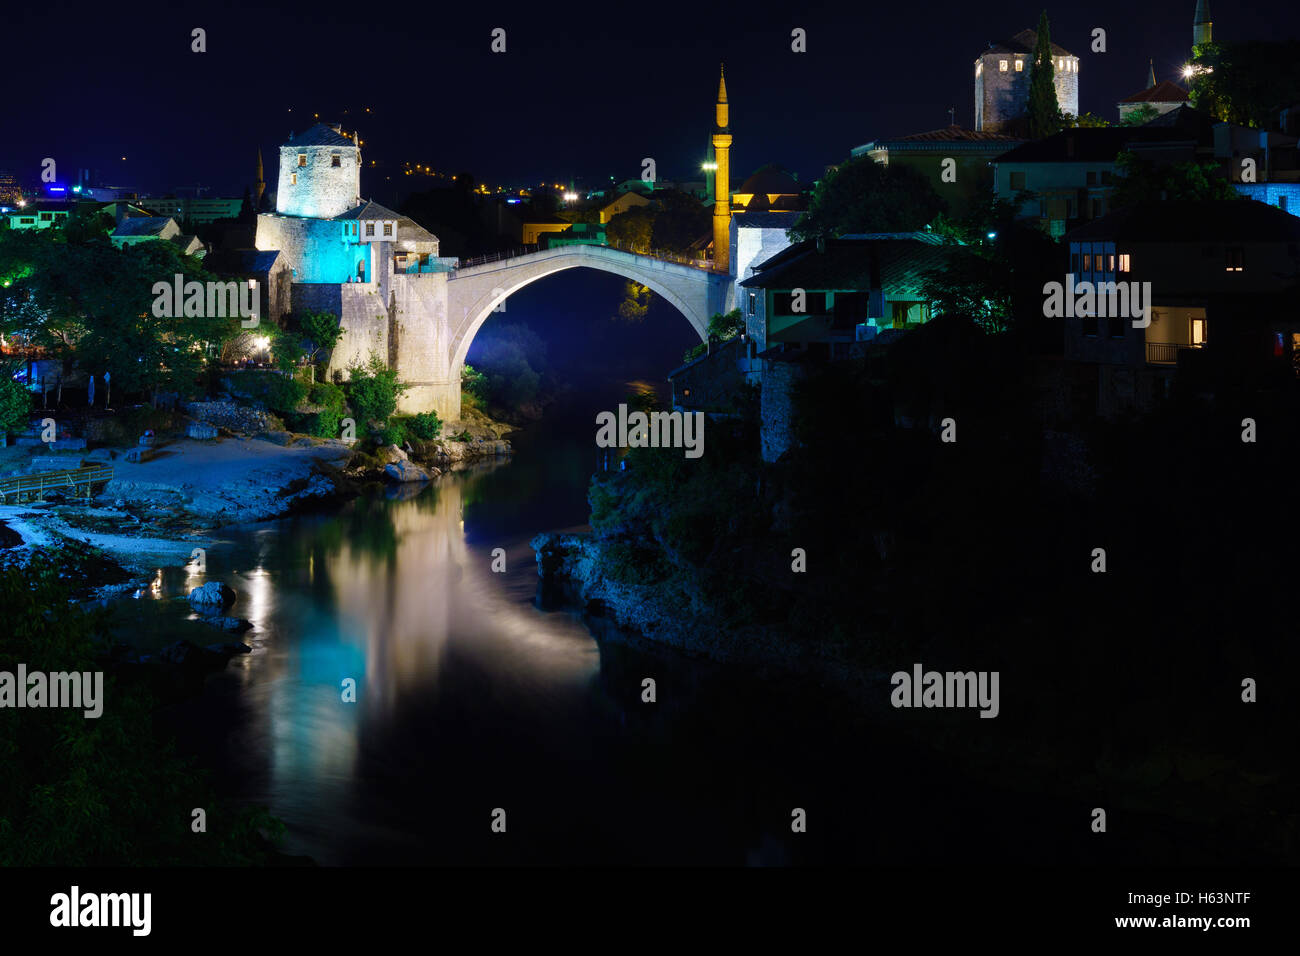 The old city and the restored Old Bridge (Stari Most) at night, in Mostar, Bosnia and Herzegovina - Stock Image